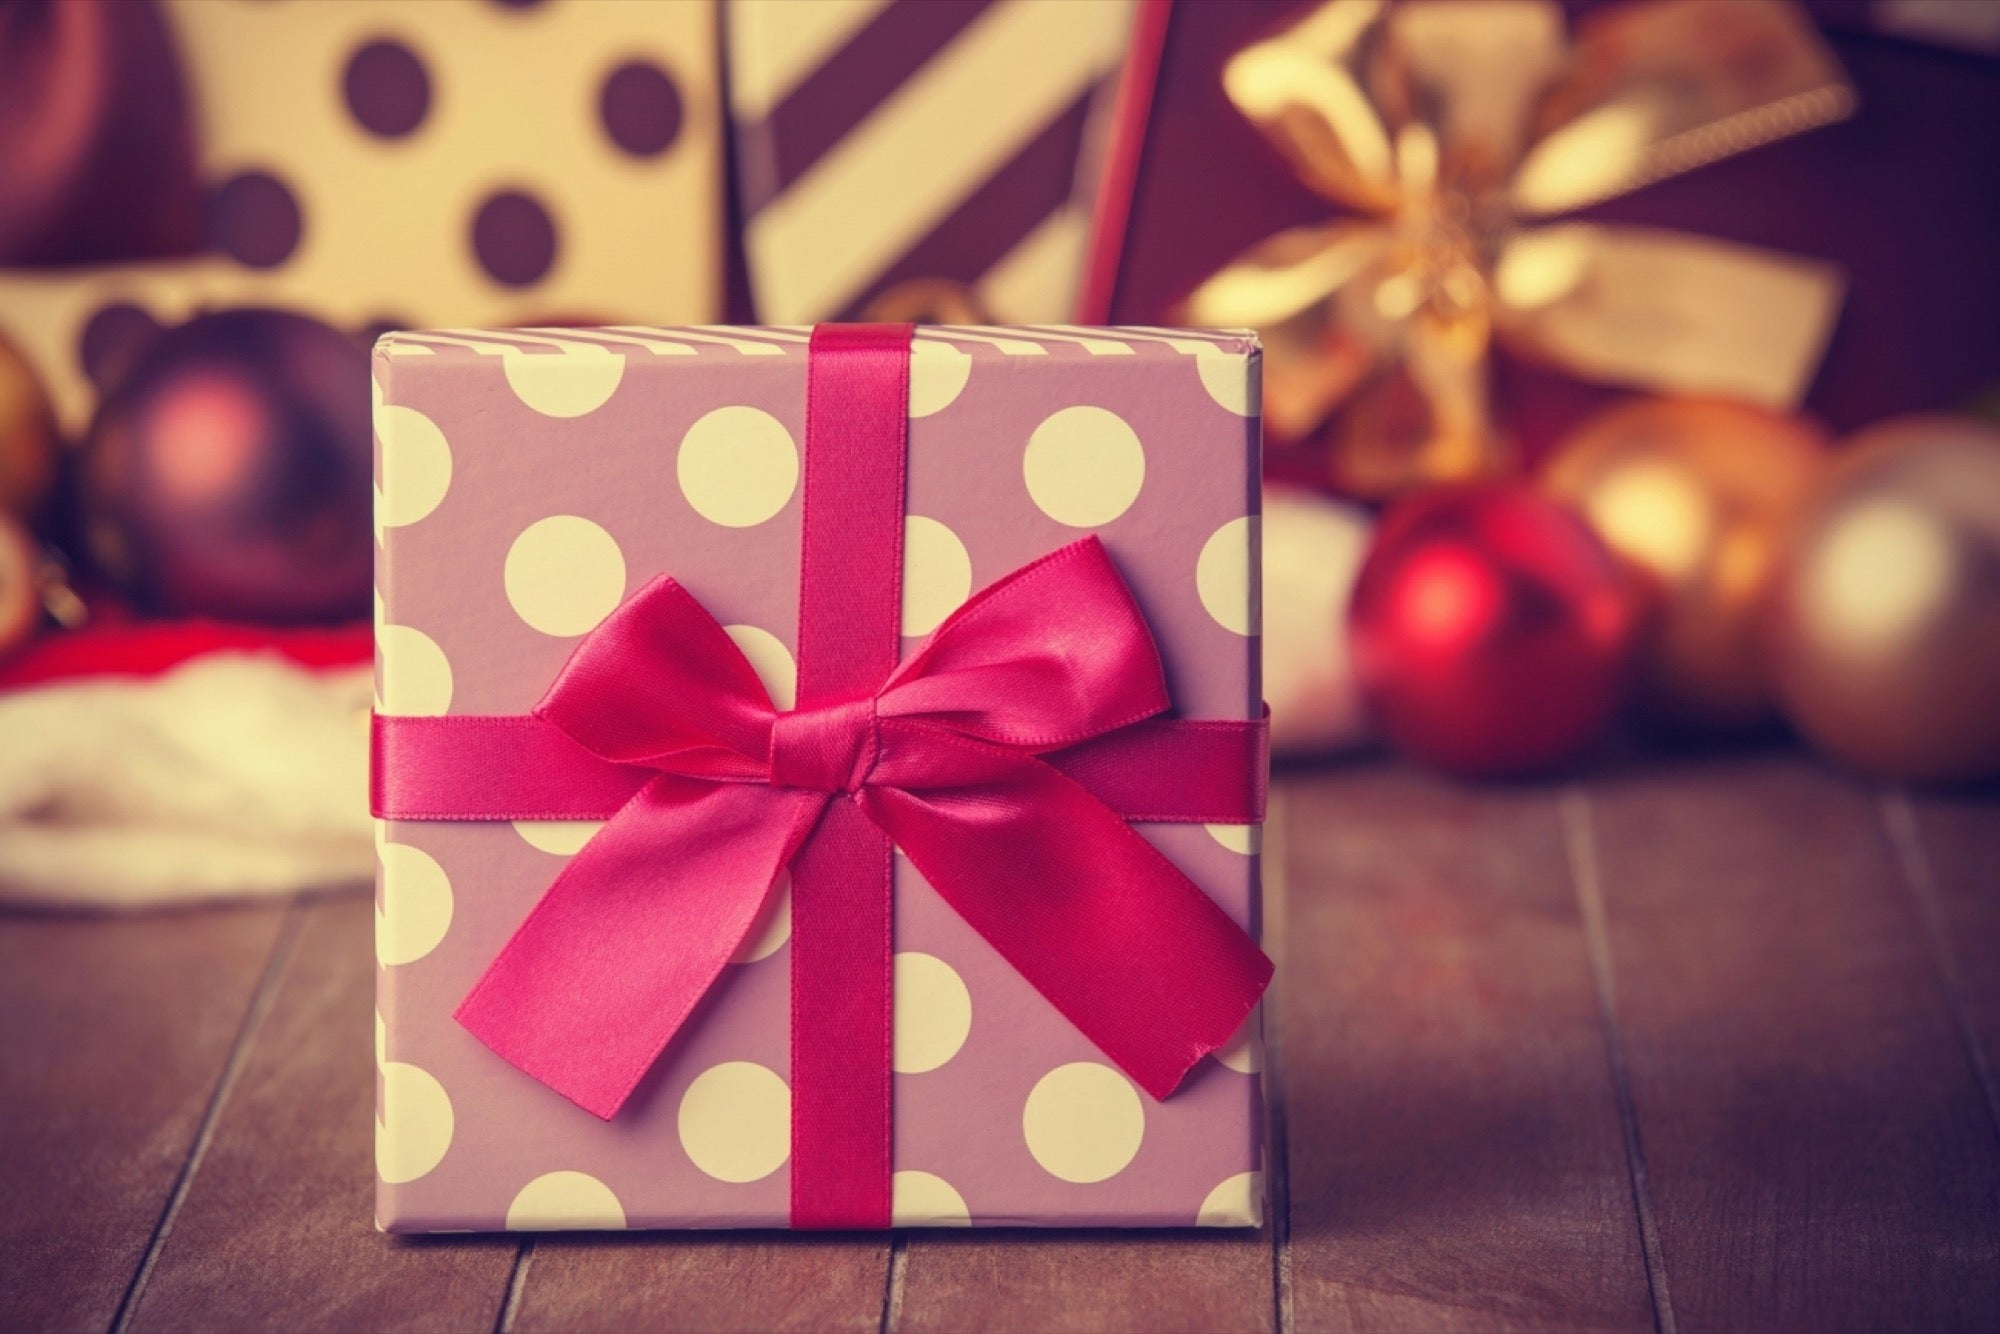 44 Top Gifts for Entrepreneurs